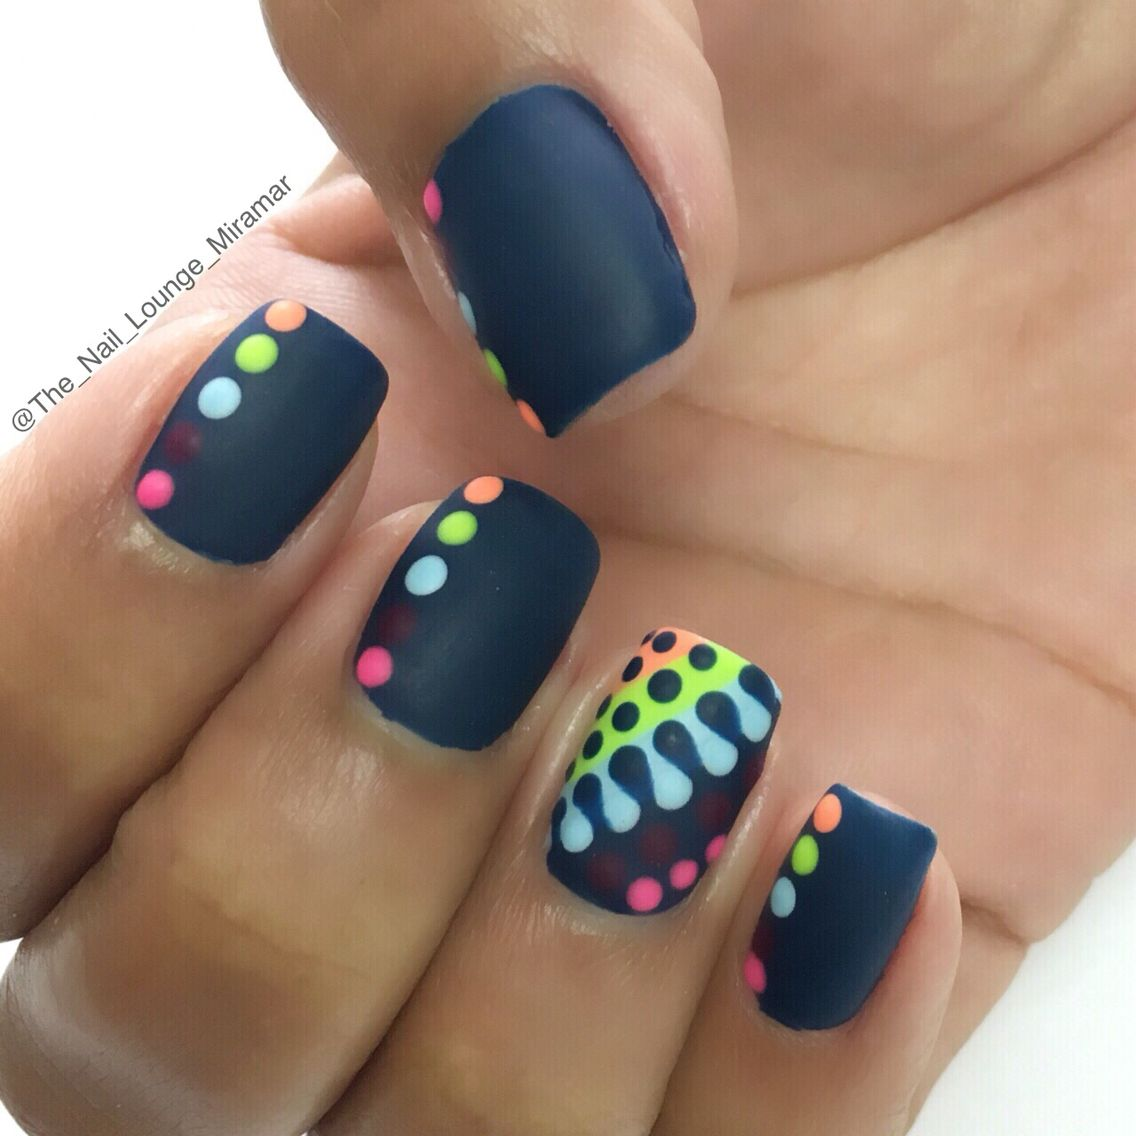 Variety Of Nail Art By Yours Truly: Bright Colorful Dots Nail Art Design